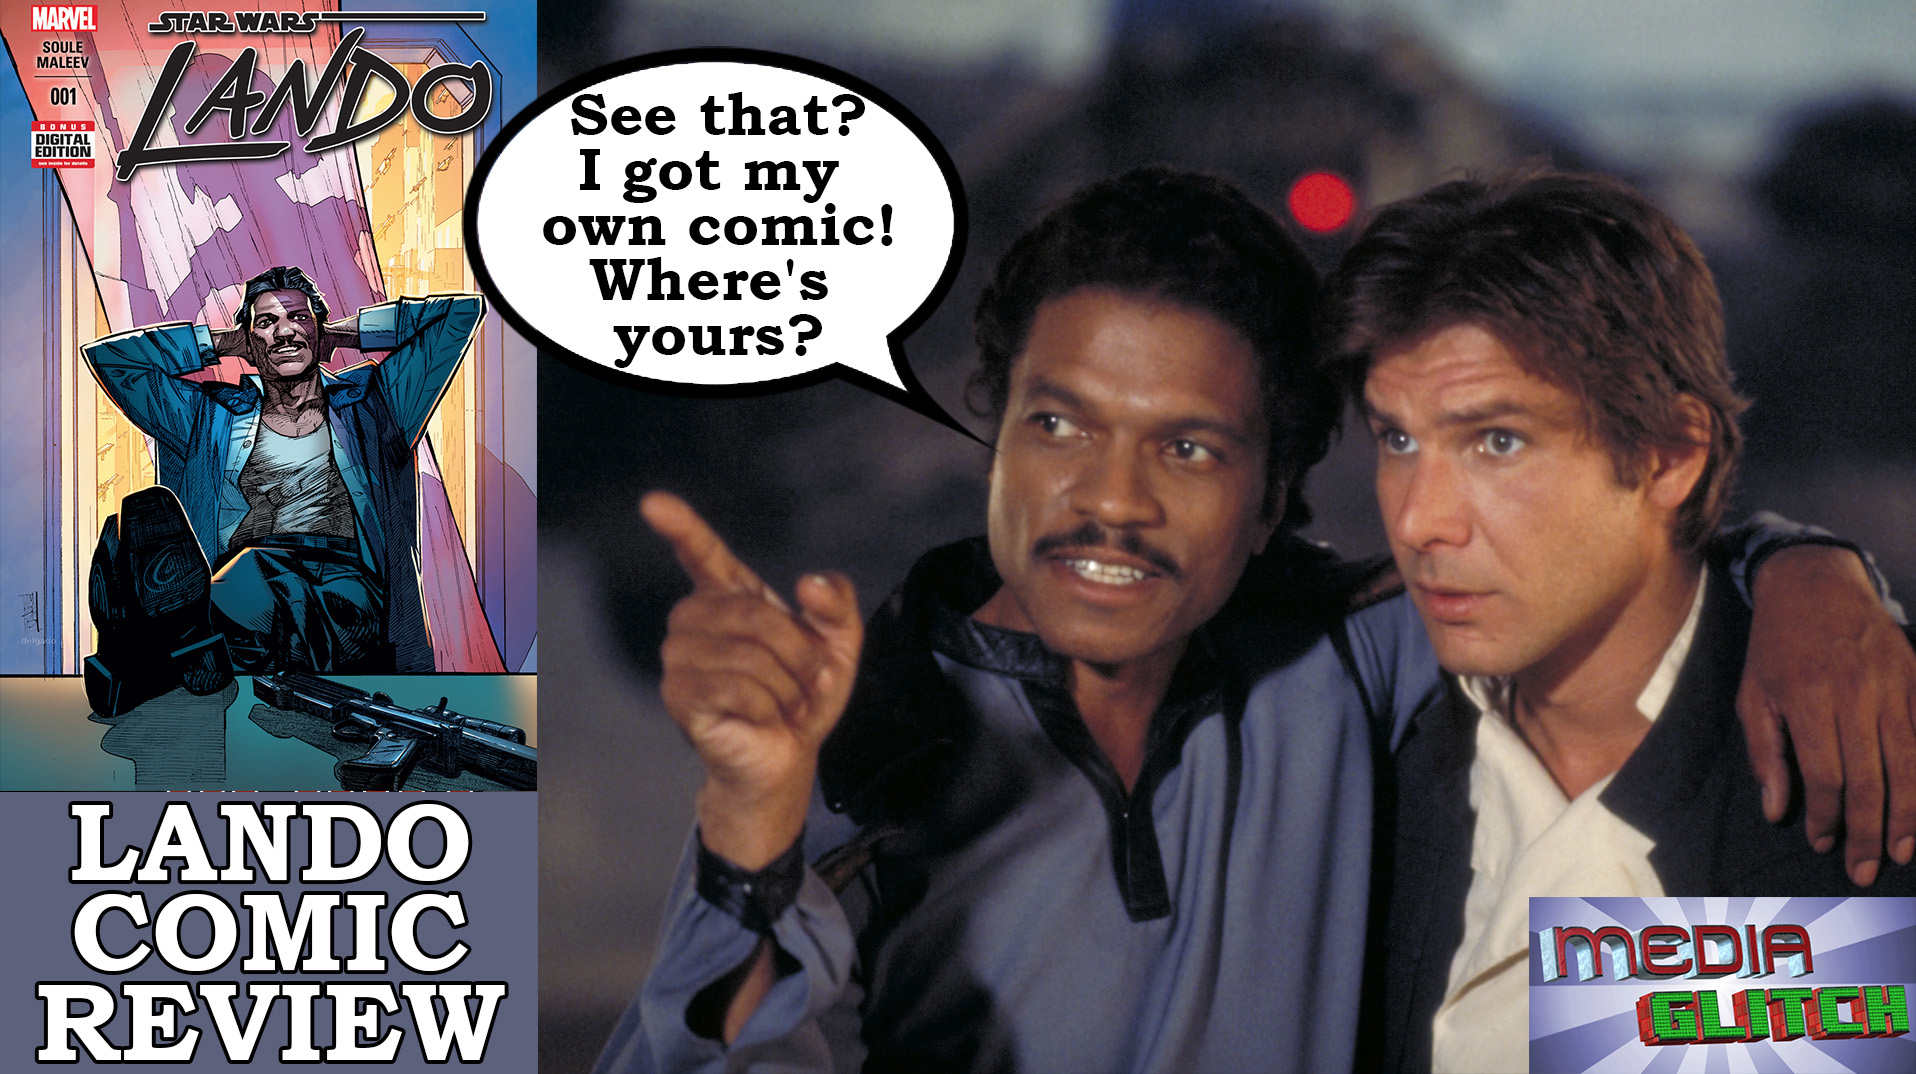 LANDO COMIC REVIEW